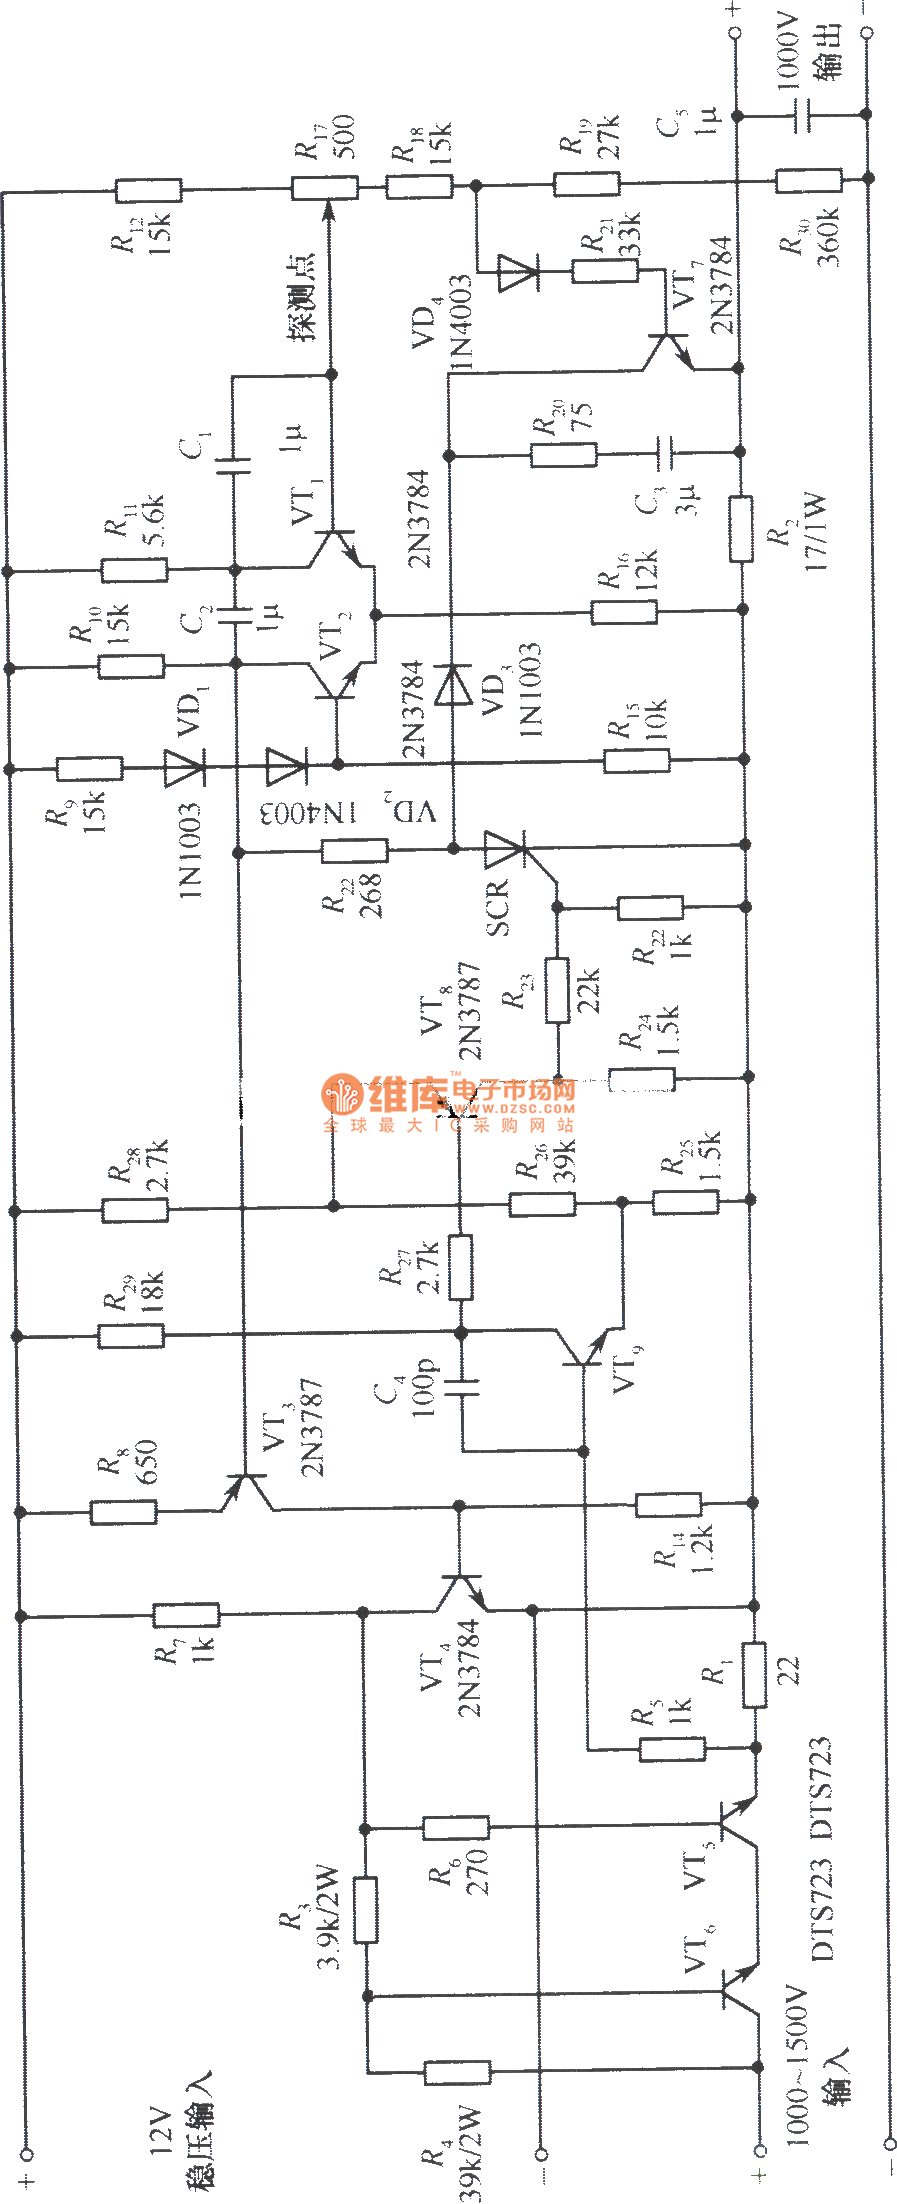 1000v high-pressure output dc regulated voltage power supply circuit